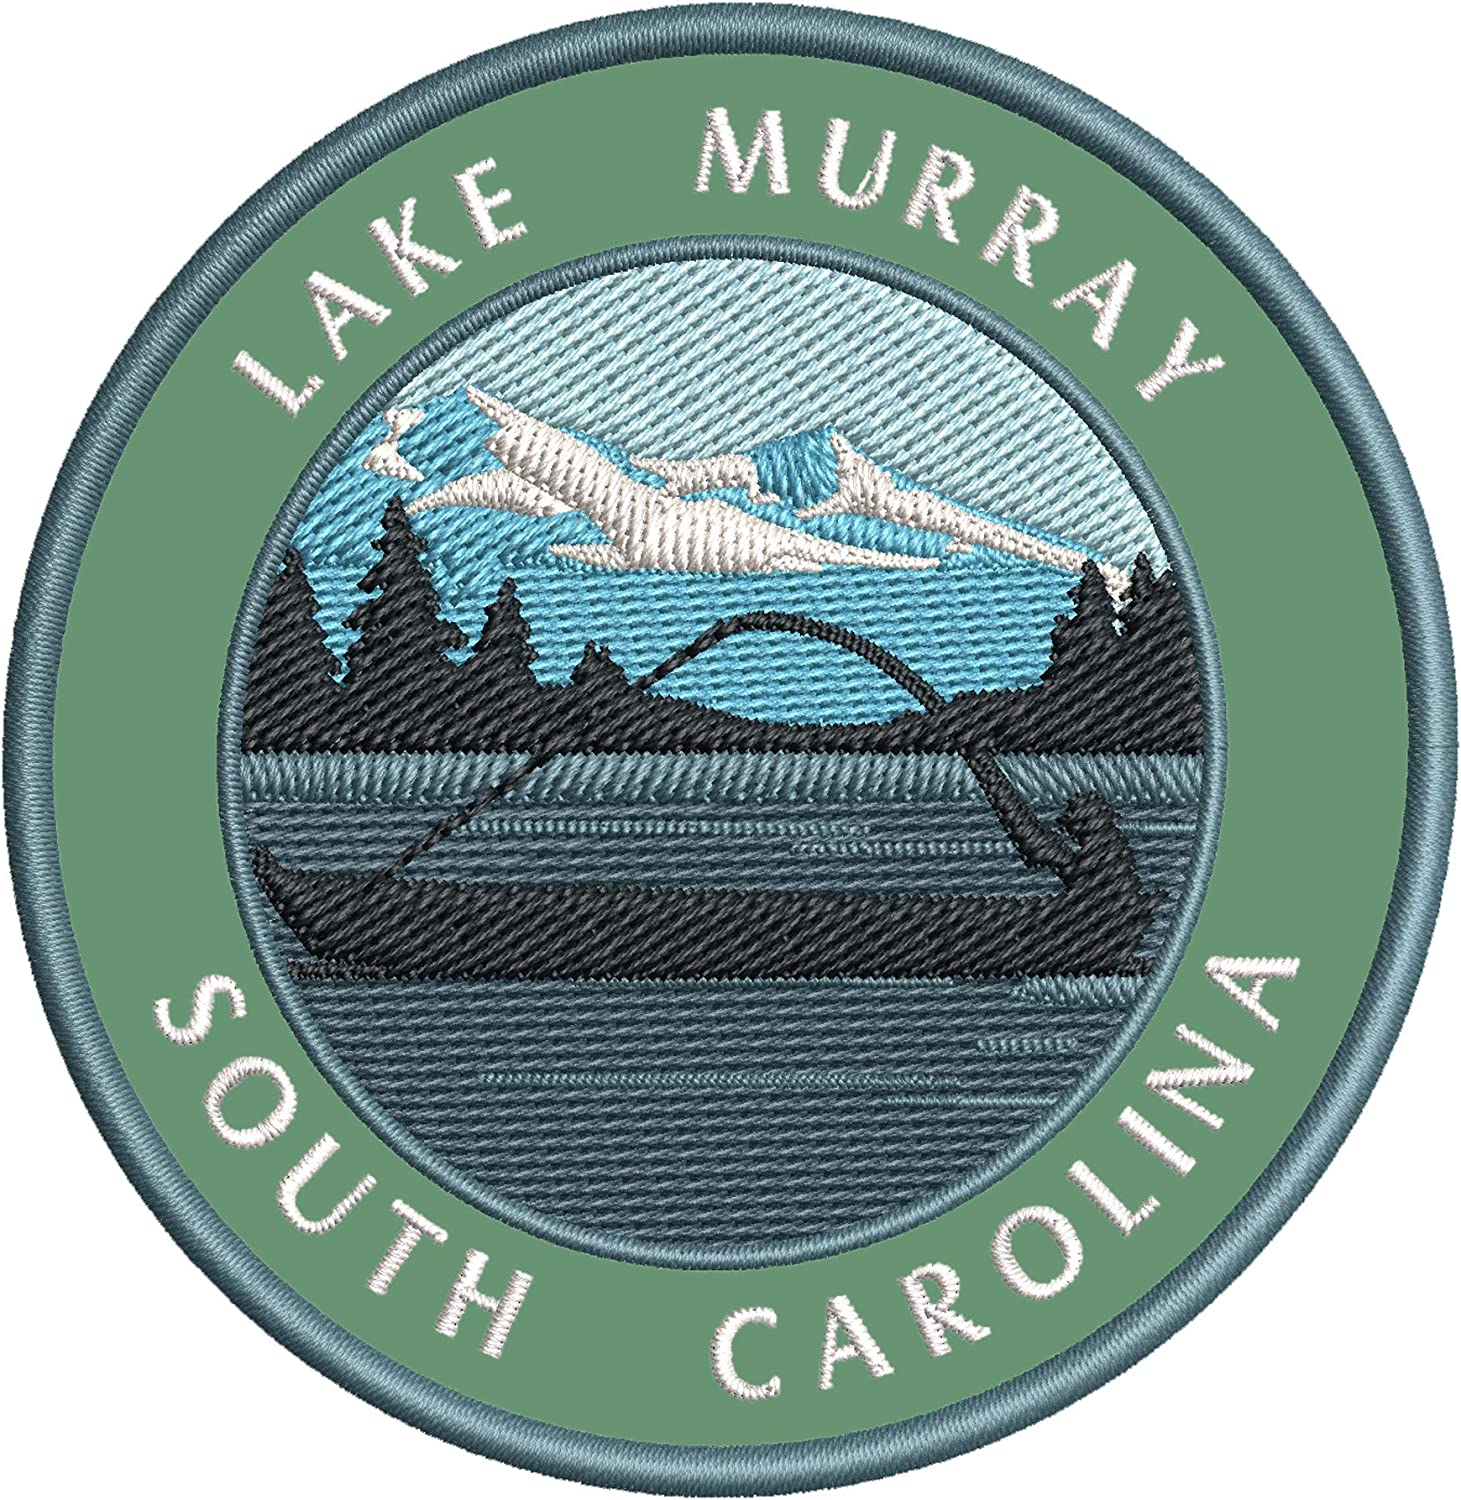 Bass Fishing Lake Murray Recommended South or OFFer Embroidered DIY Iron Carolina